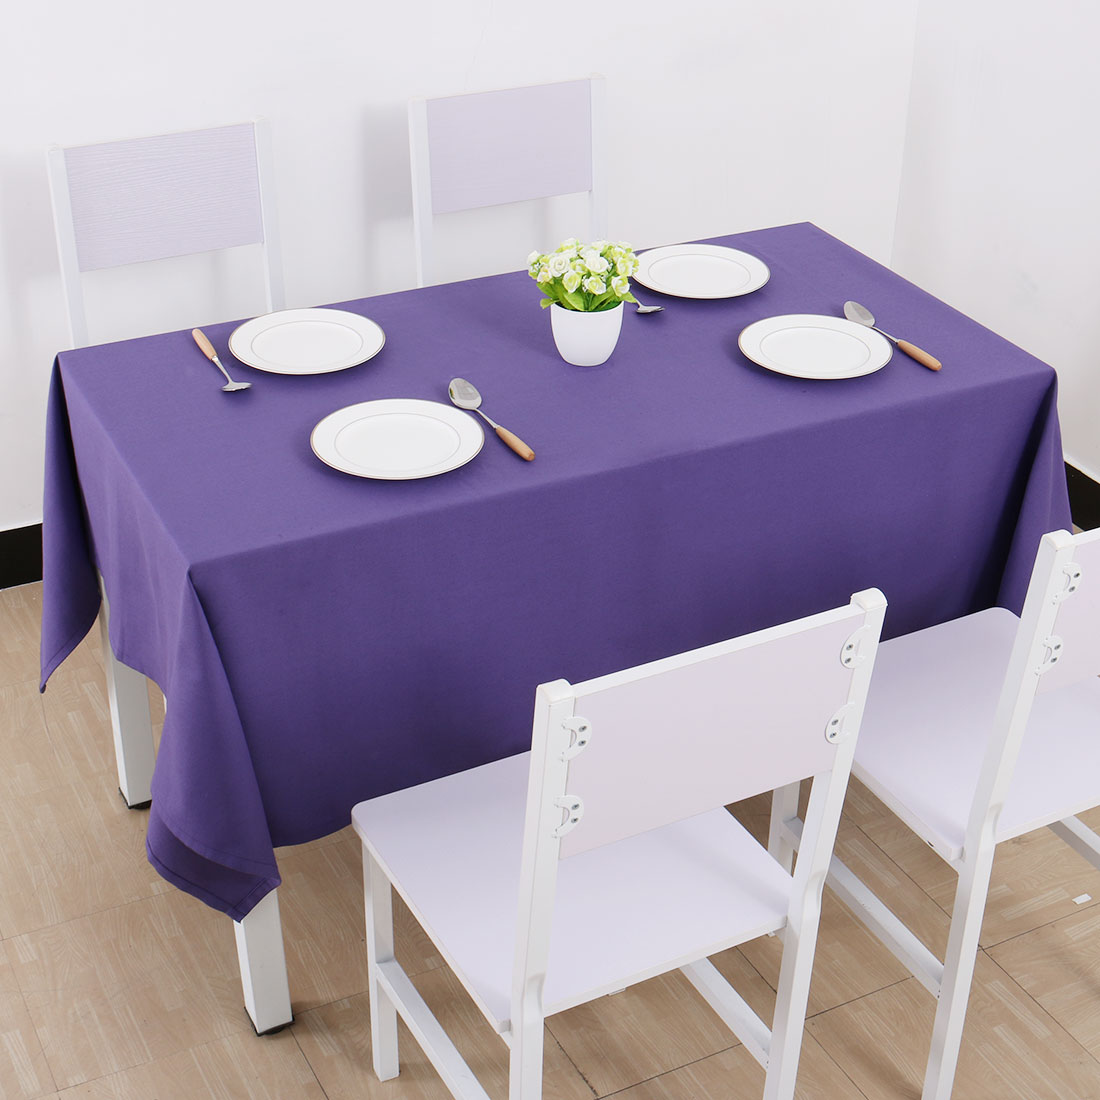 """Vintage Rectangle Cotton Linen Tablecloth Purple 55""""x71"""" Water Stain Resistant - image 5 of 7"""